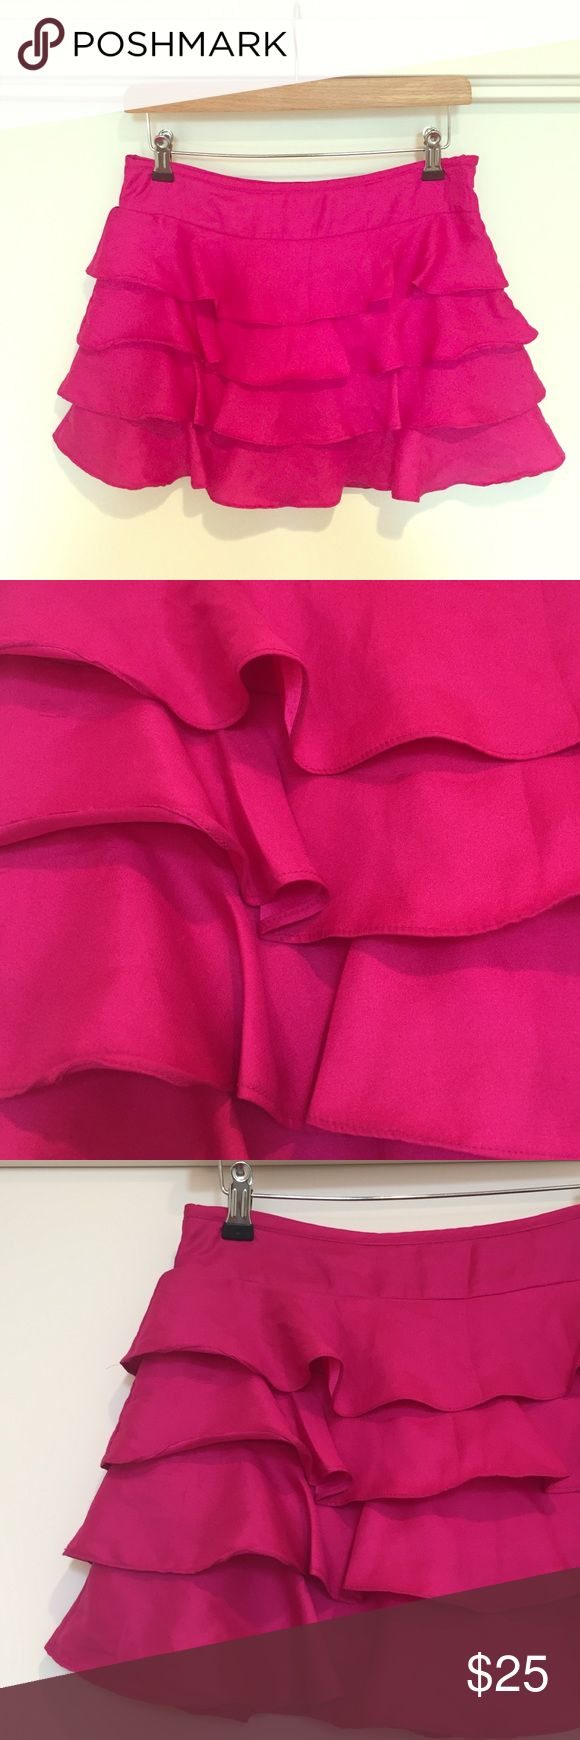 Topshop Satin fuchsia mini Layered fuchsia pink Topshop mini in ra-ra style and layered. I'm 5'4 and this comes mid thigh. Worn a few times, in good overall condition Topshop Skirts Midi